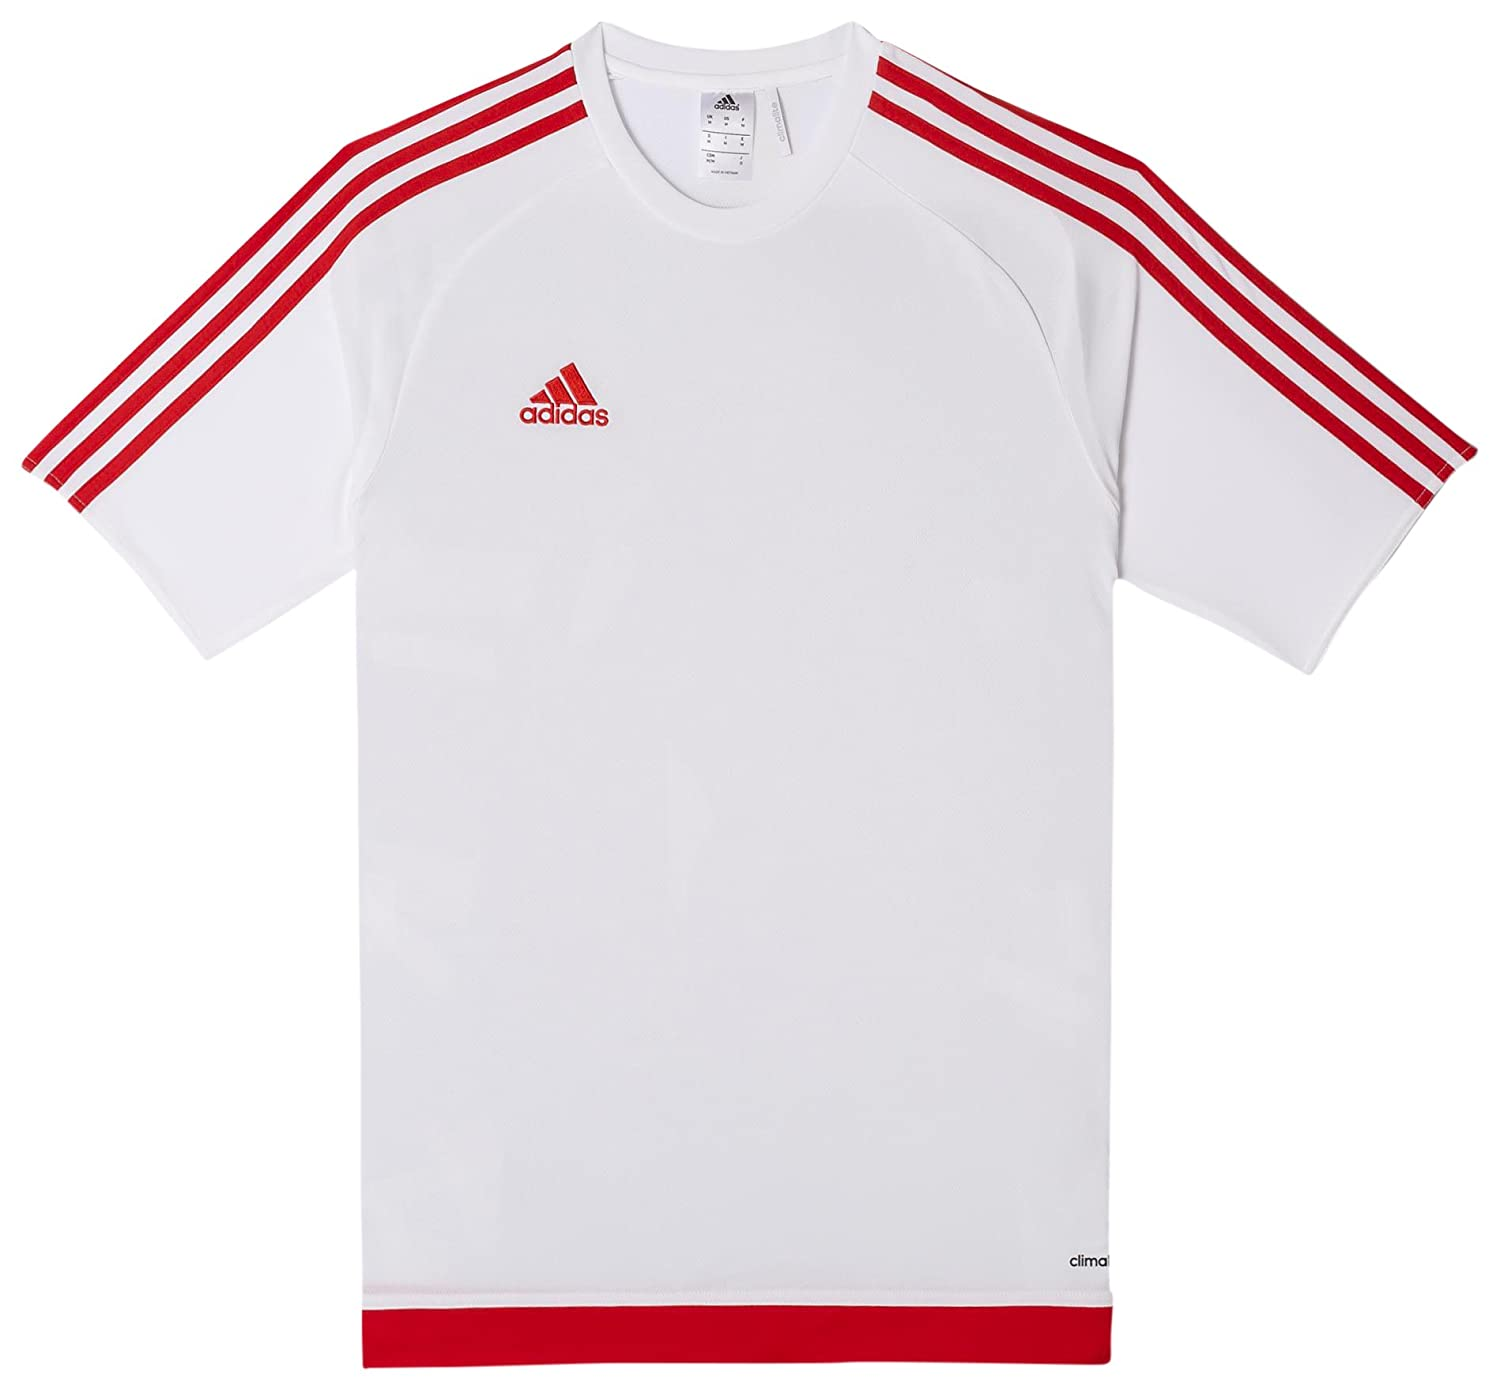 maglie adidas nere